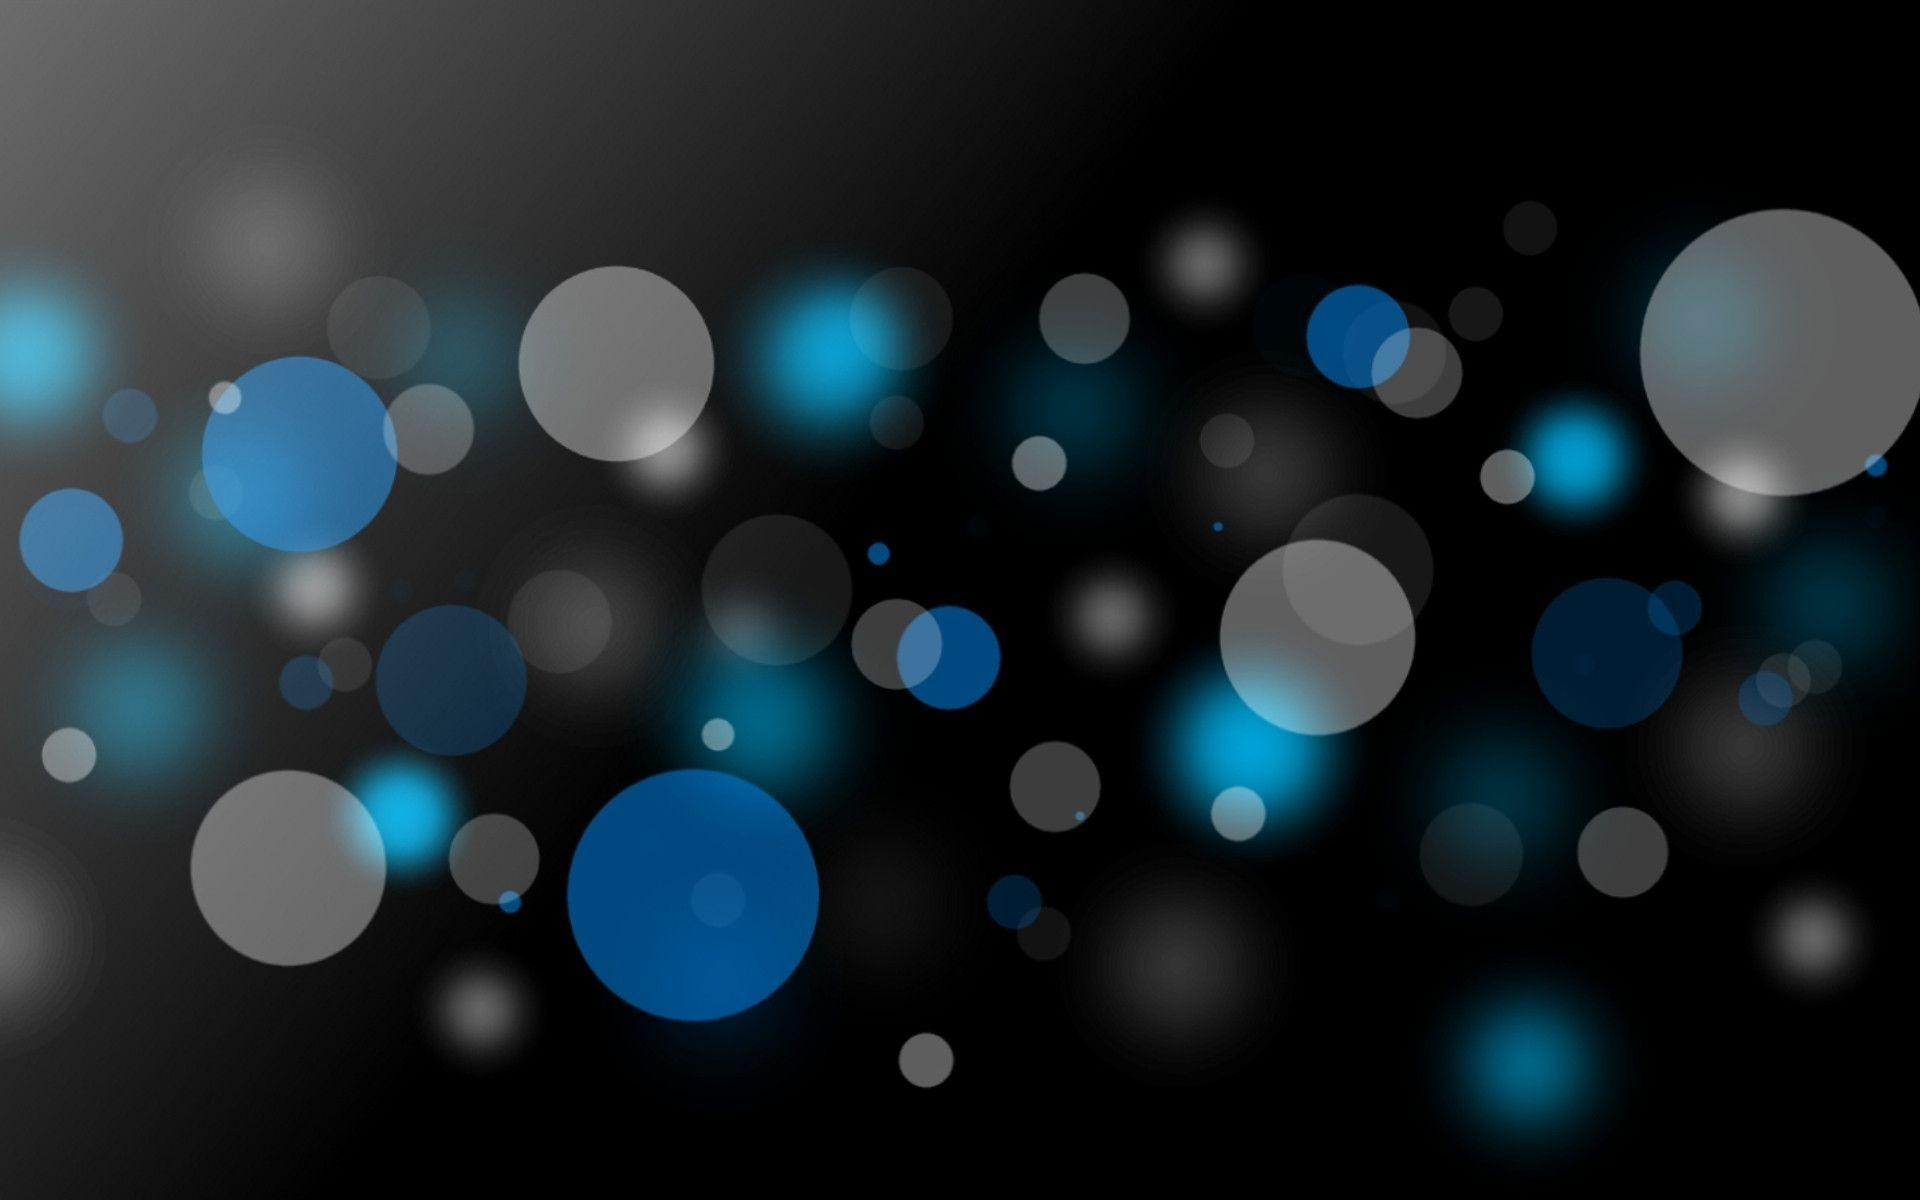 Wallpapers Abstract, Black, Background, Circles, Colors, Wallpapers